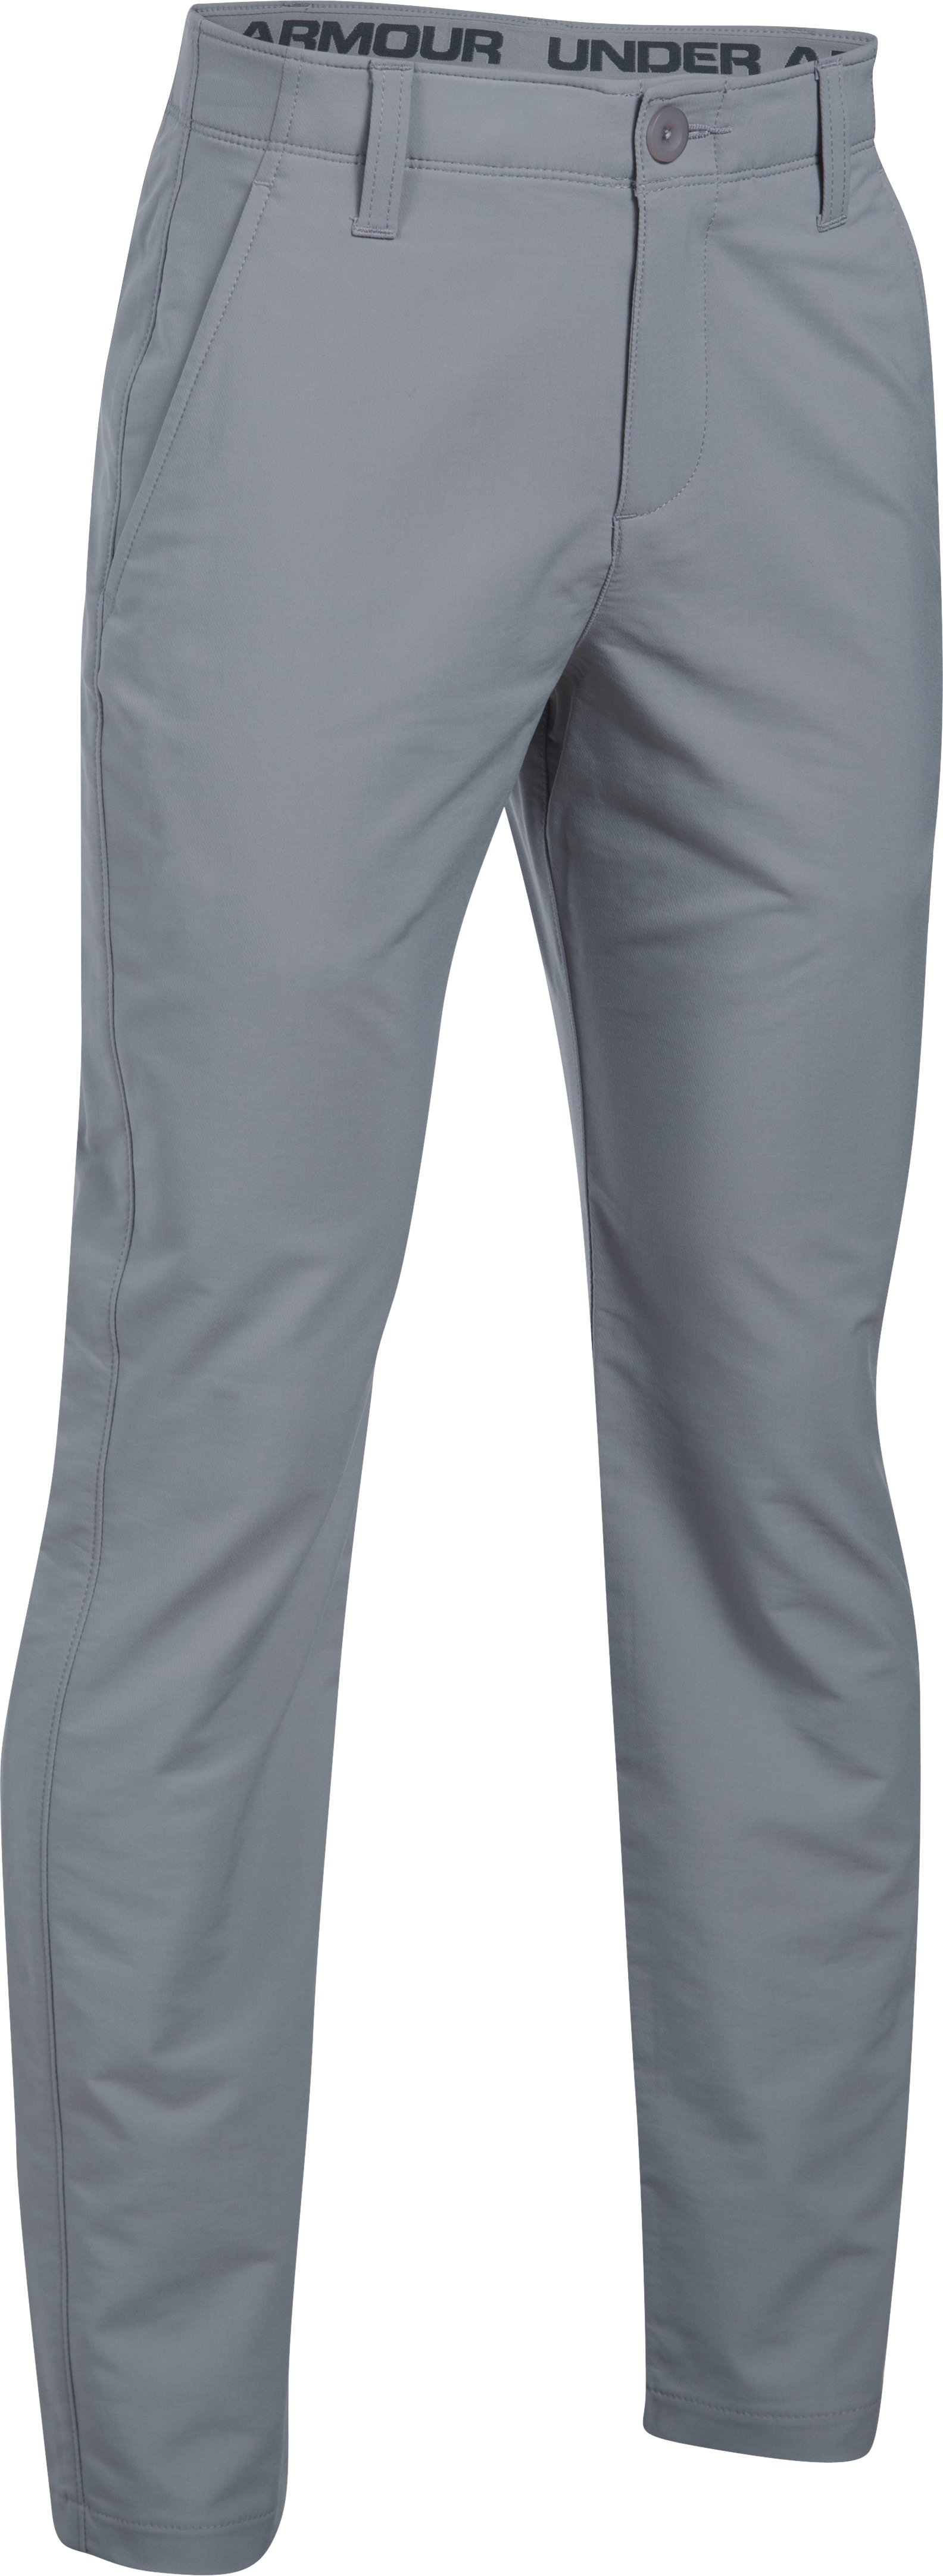 Boys' UA Match Play Pants, Steel